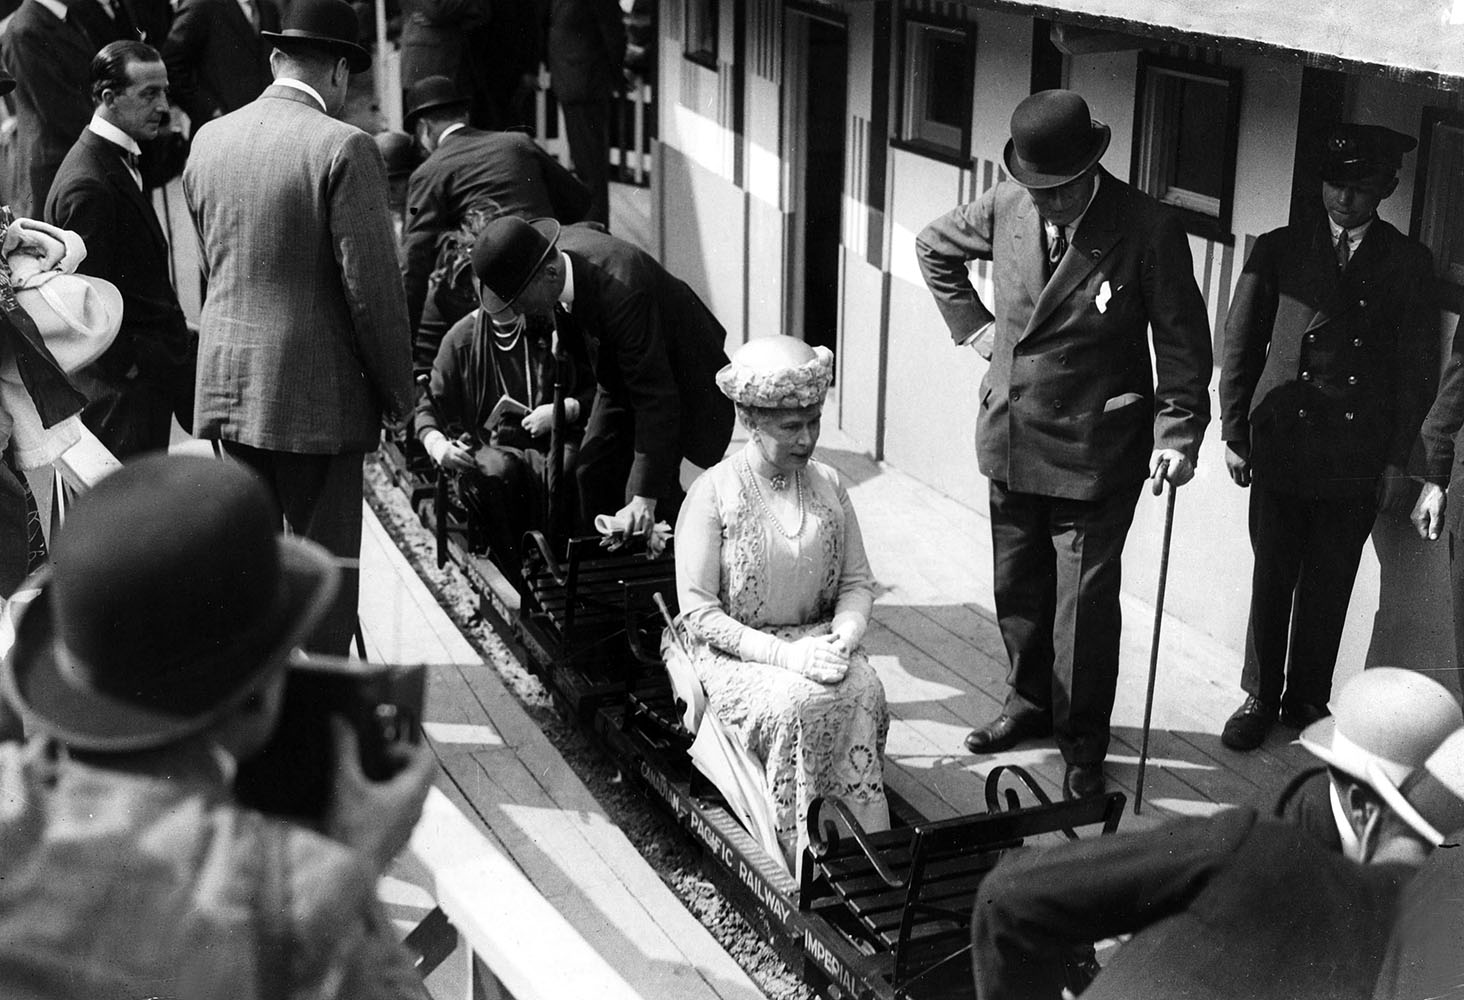 Queen Mary travelling on a miniature fine art photography